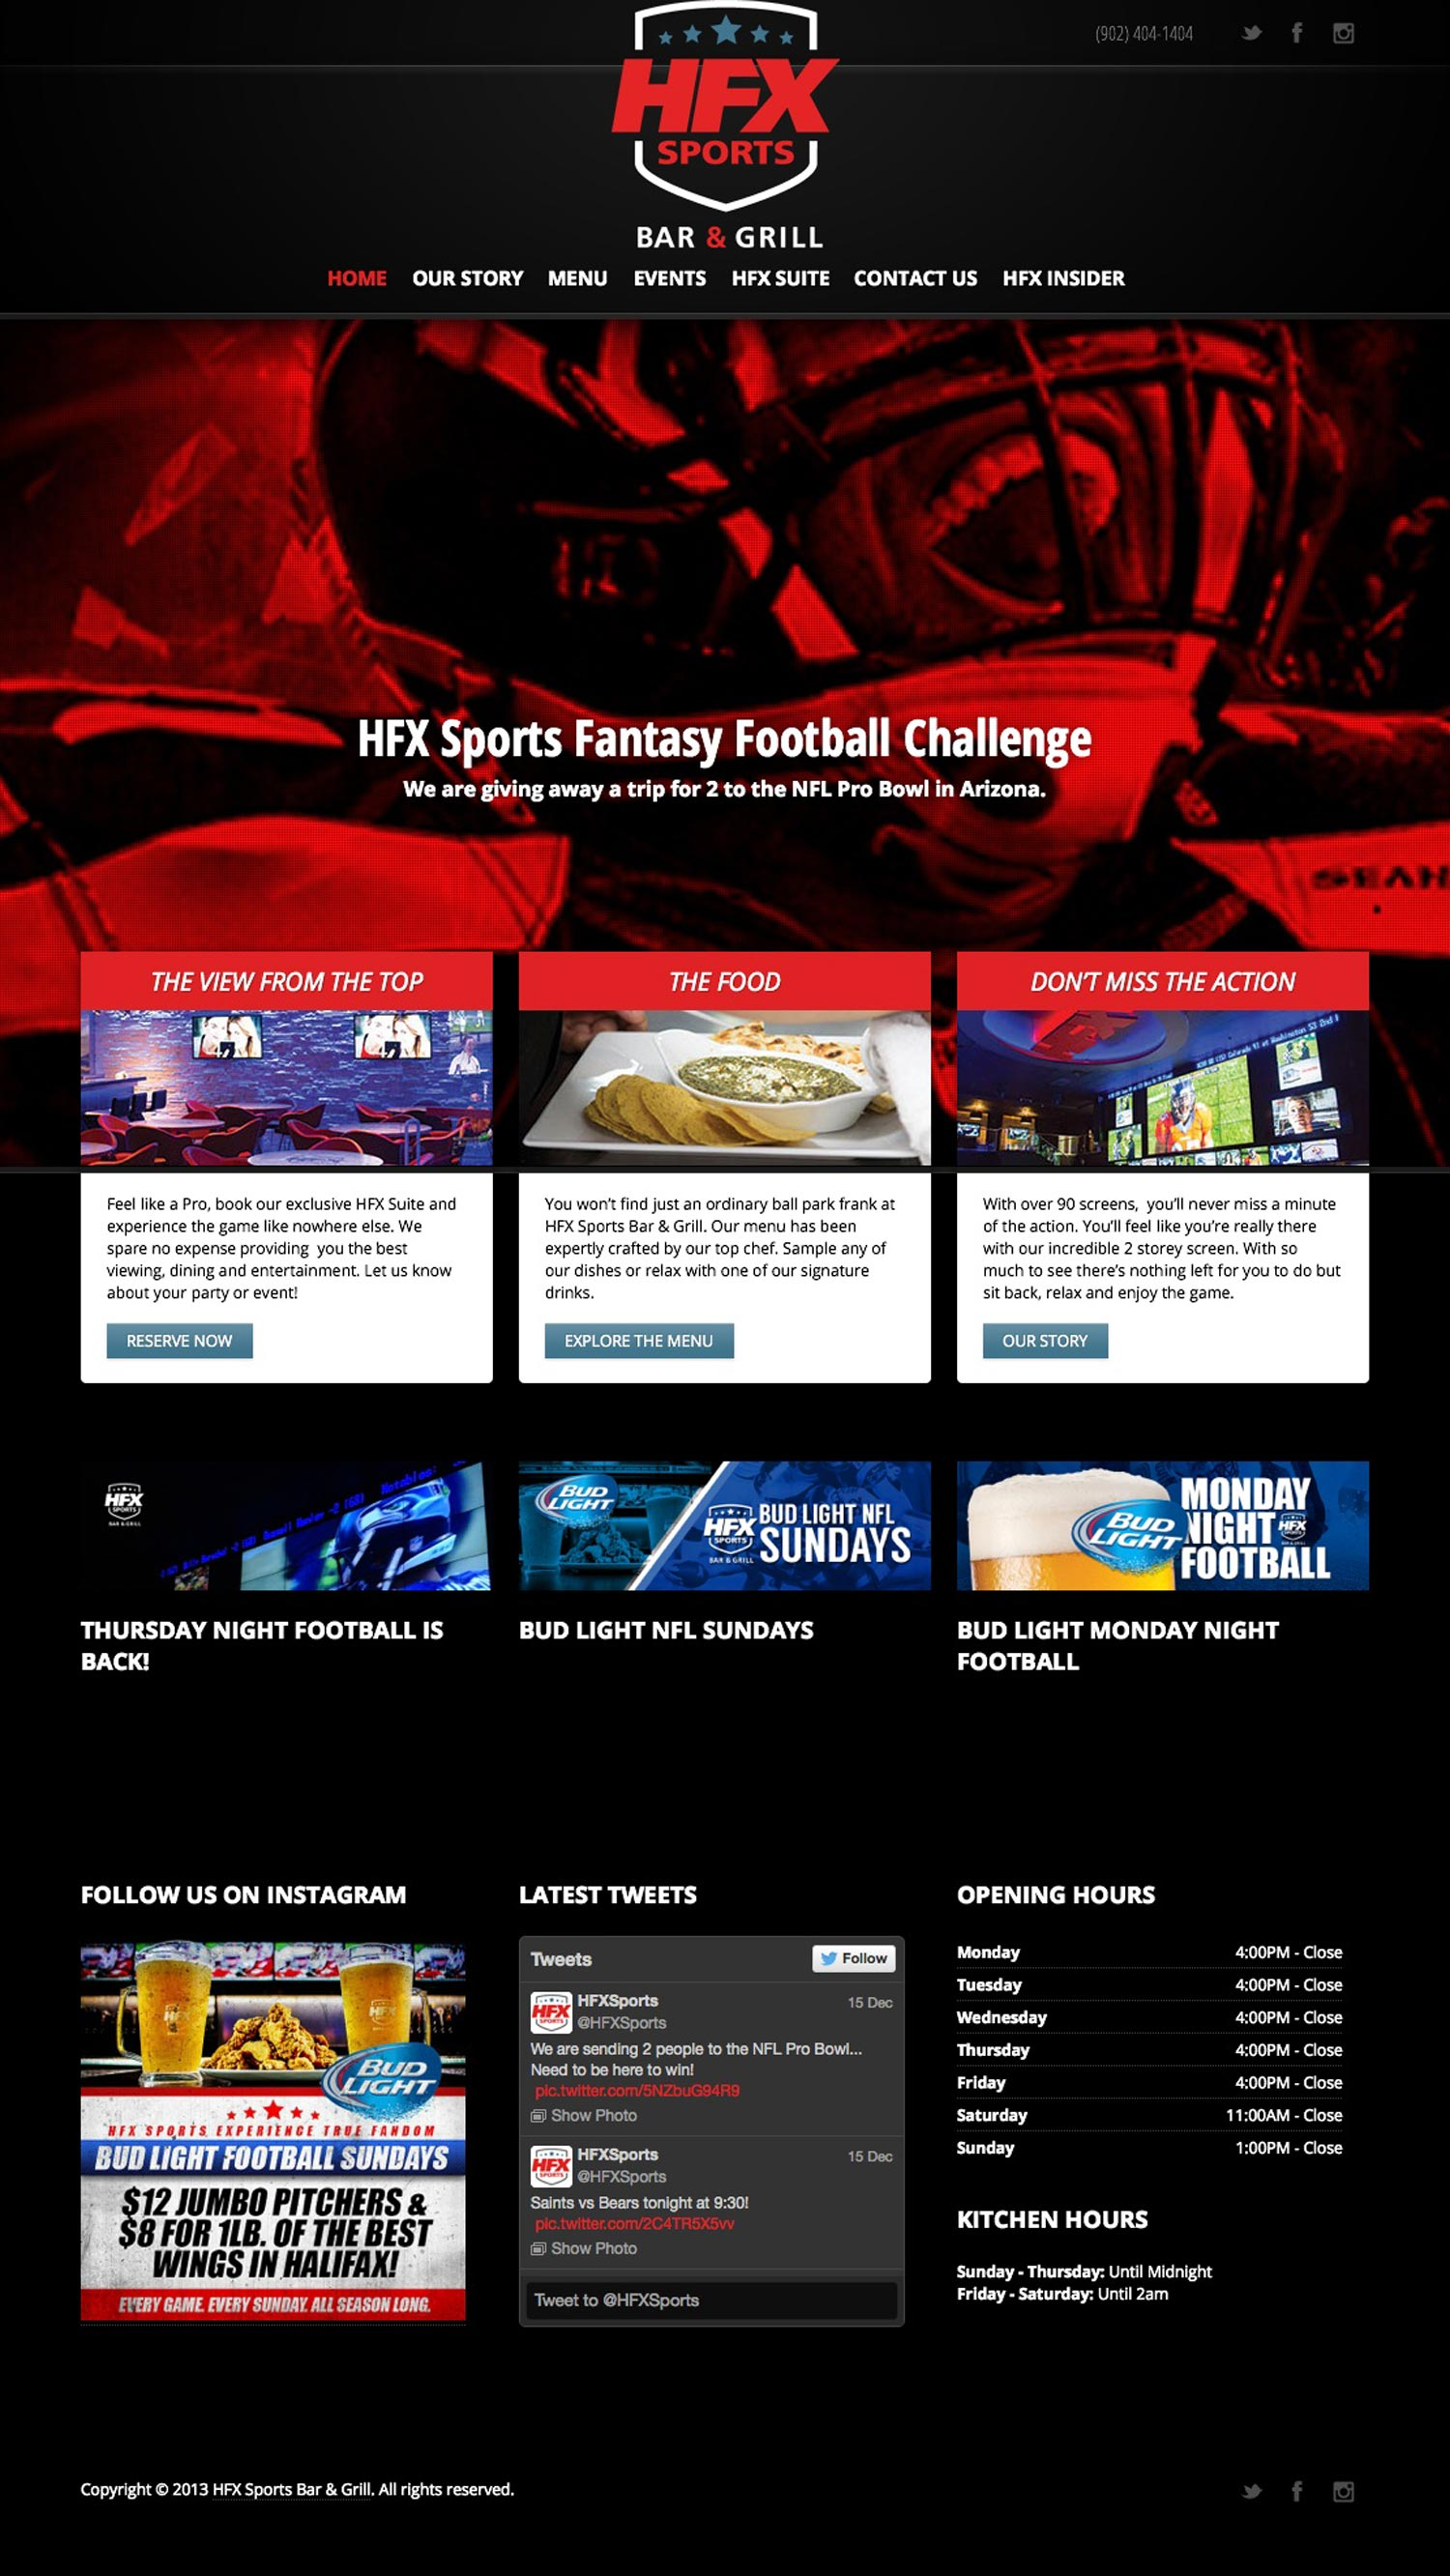 HFX SPORTS BAR & GRILL WEBSITE The team's mission was to create a site that communicated all the variety and excitement of a high-end sports bar together with clear and straightforward information on the bar's offering—from back history to menu to reservations. The result is a very cleanly designed site that takes the visitor through the sports bar environment, food offering and wide roster of activities. The CMS allows the client to constantly and effortlessly update the site with new content, essential for the life of a sports bar with an ever-changing schedule of sports programming.